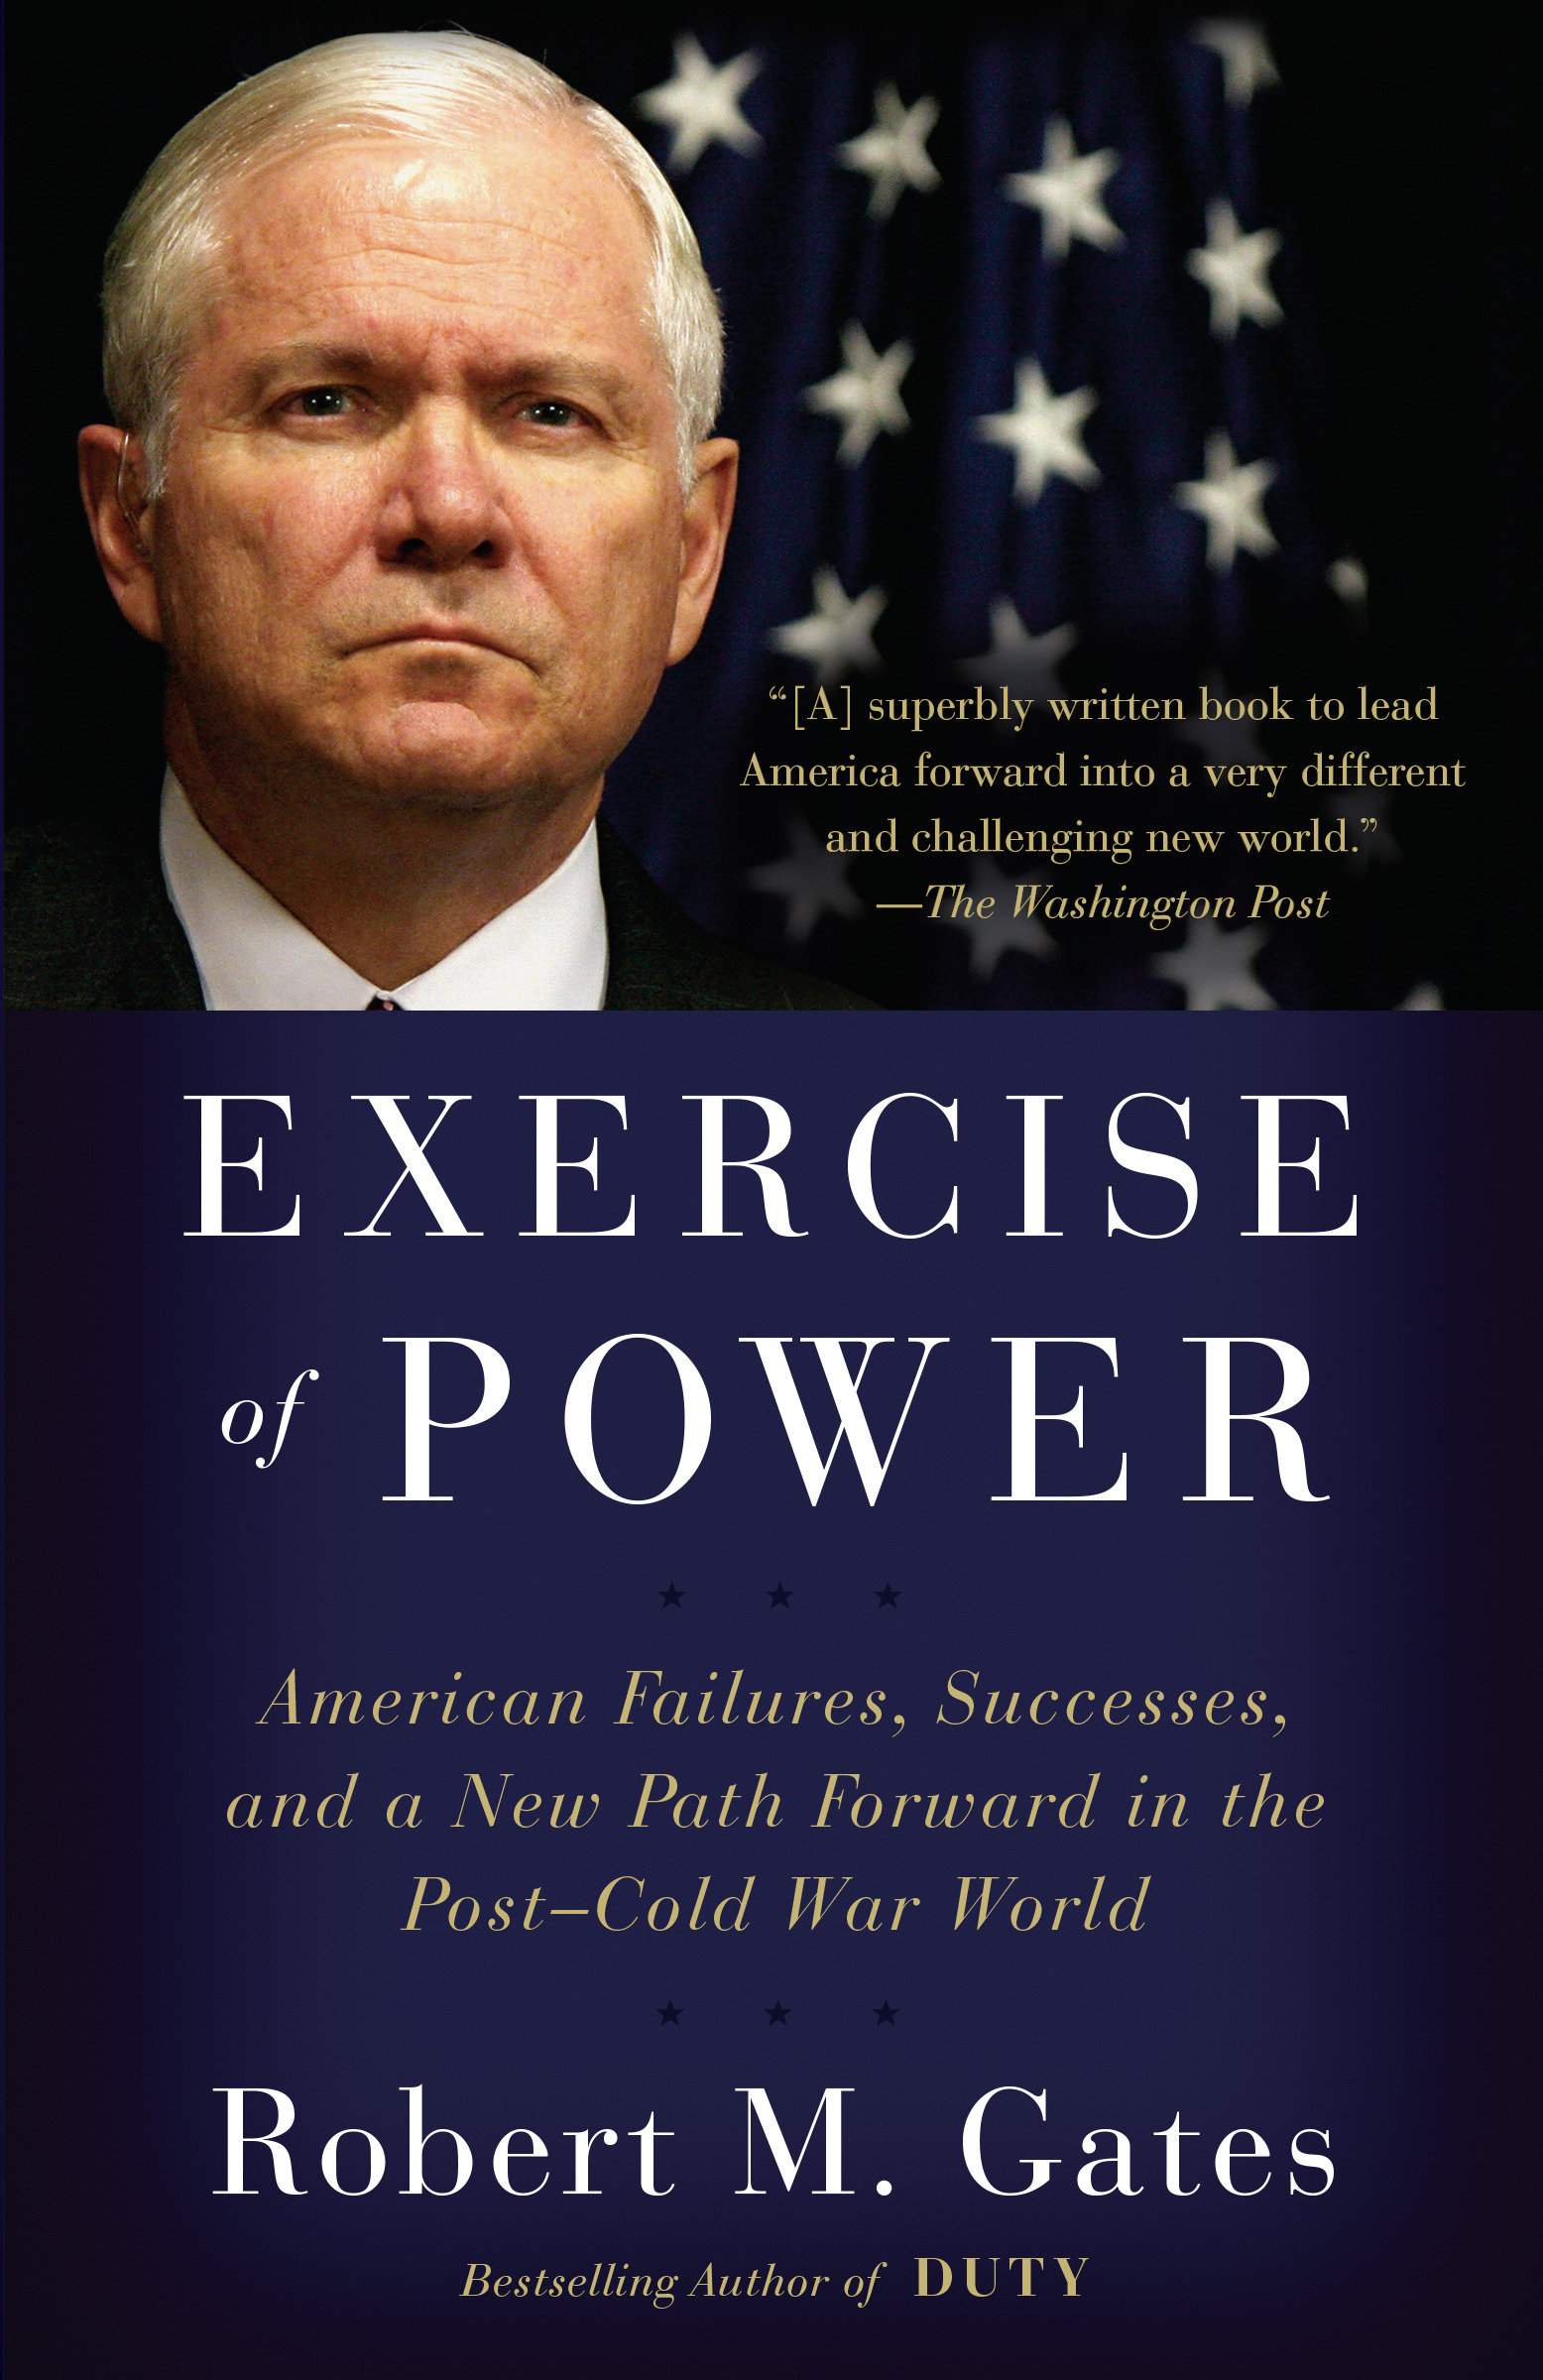 Exercise of Power American Failures, Successes, and a New Path Forward in the Post-Cold War World